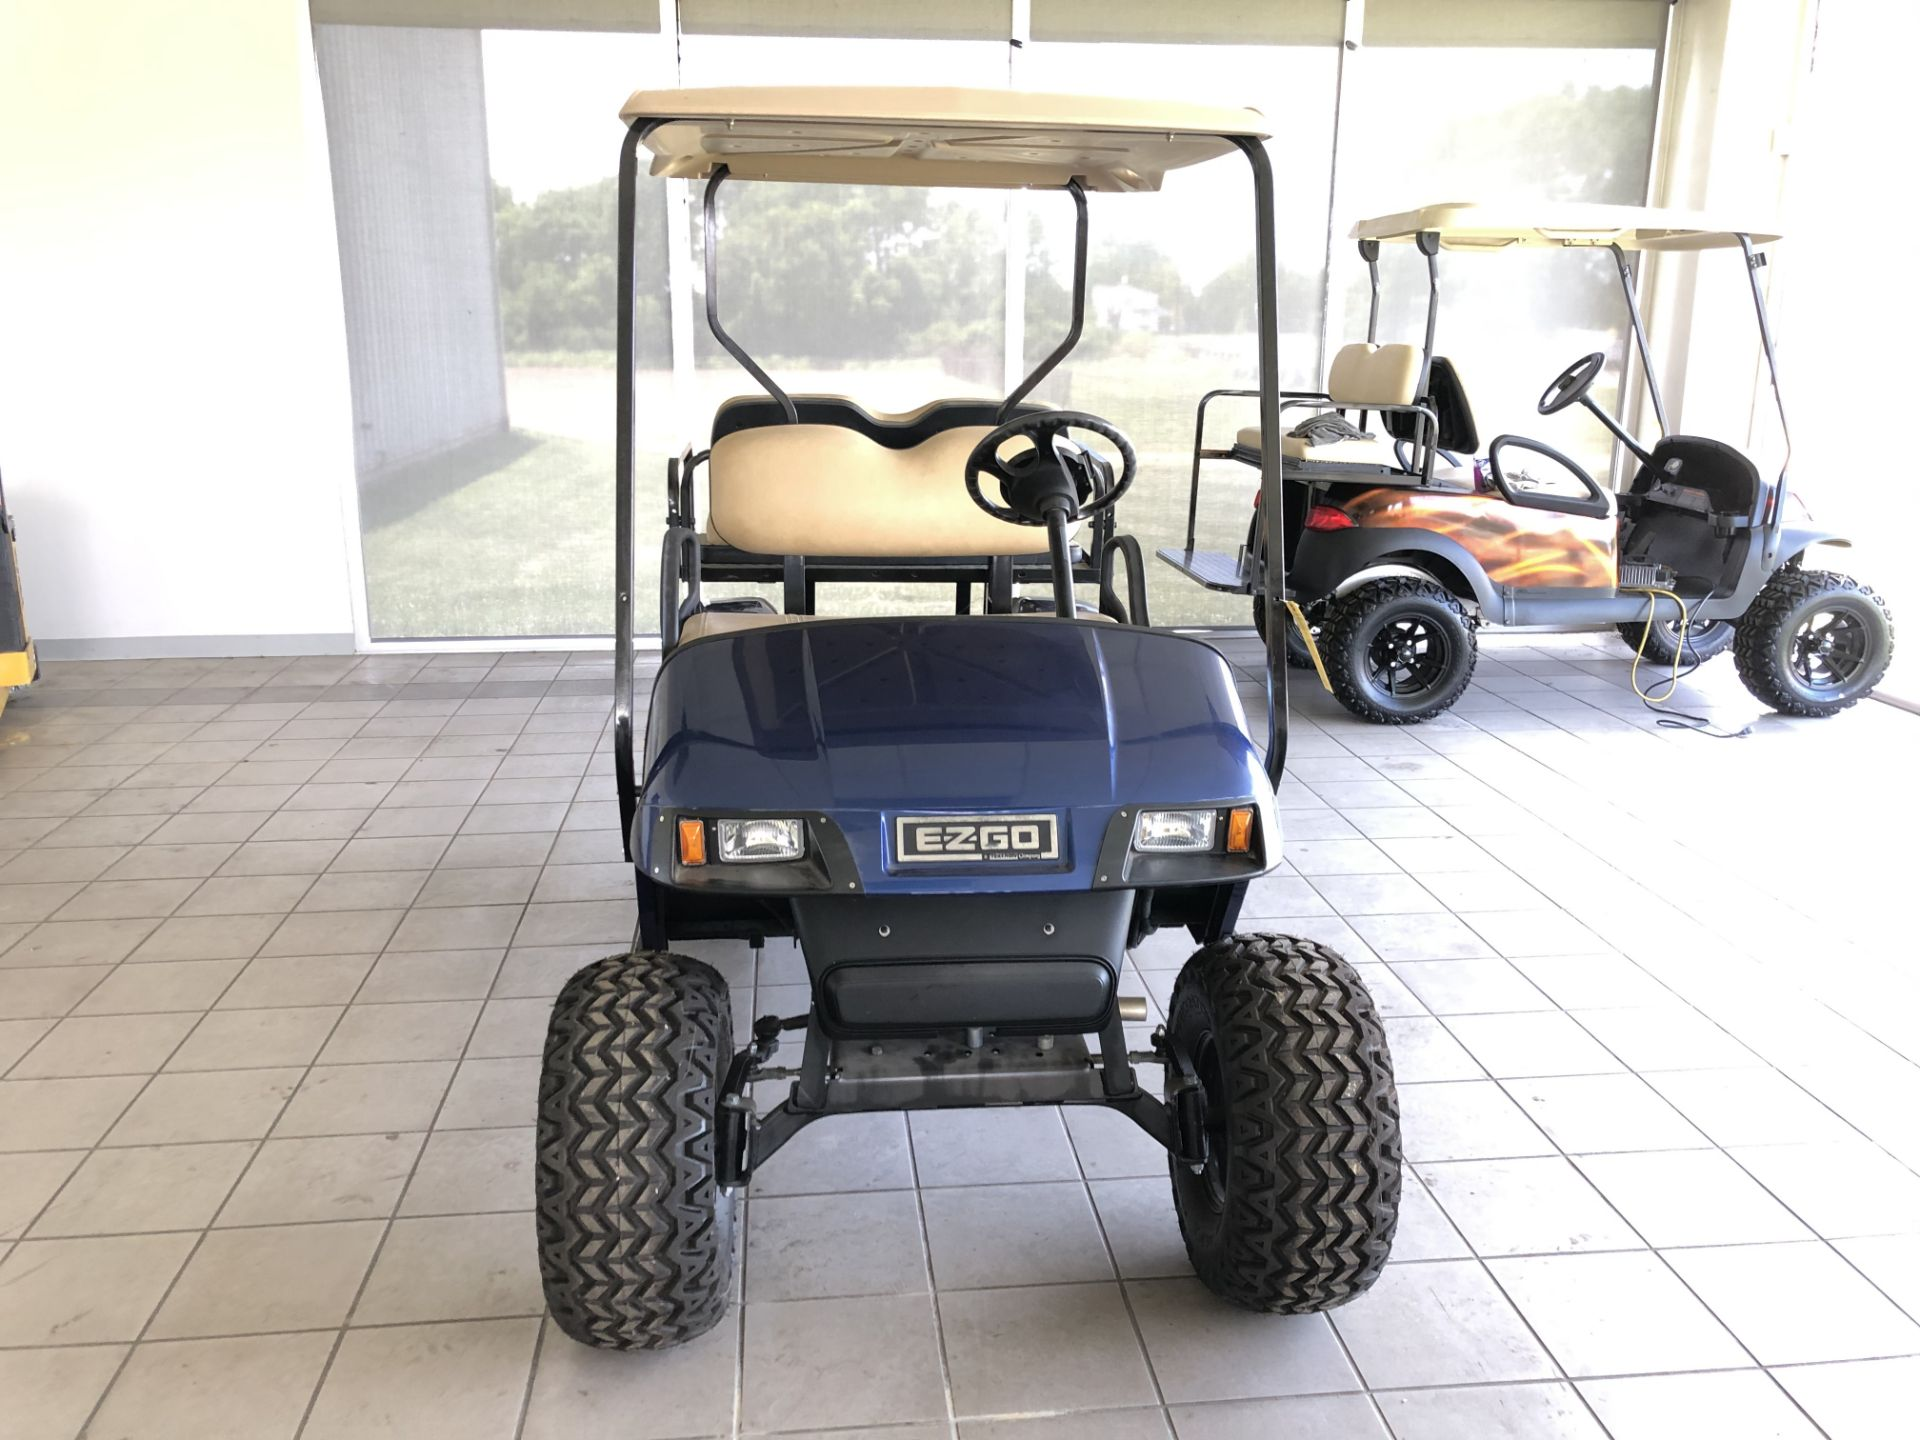 Lot 27 - 2012 EZ GO GOLF CART, GASOLINE, 4-PASSENGER FOLD DOWN SEAT, LIFT KIT, HEADLIGHTS/BRAKE-LIGHTS, NEW